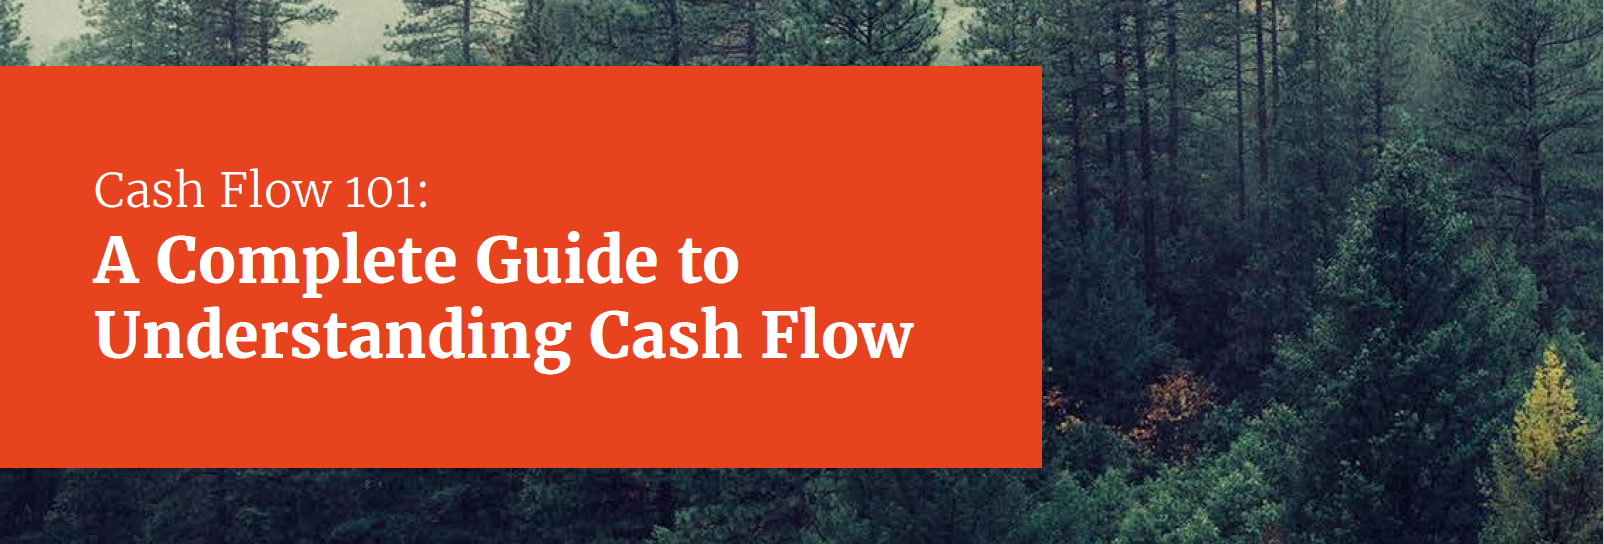 Cash Flow 101: A Complete Guide to Understanding Cash Flow